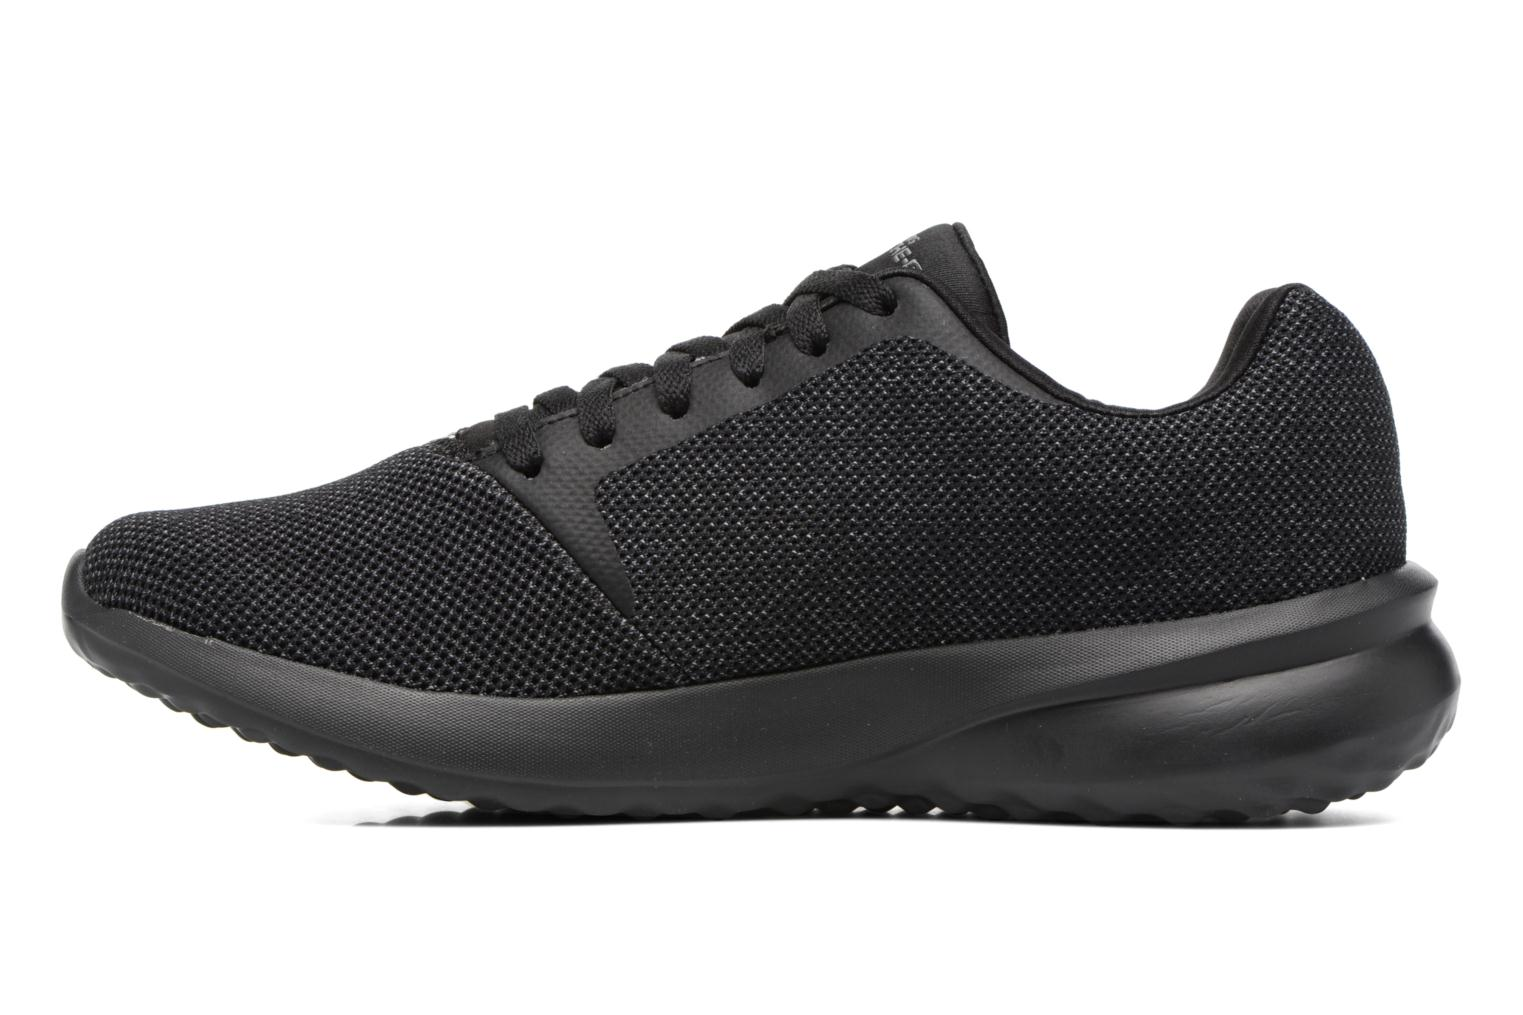 Zapatillas de deporte Skechers On-the-go City 3.0 Negro vista de frente